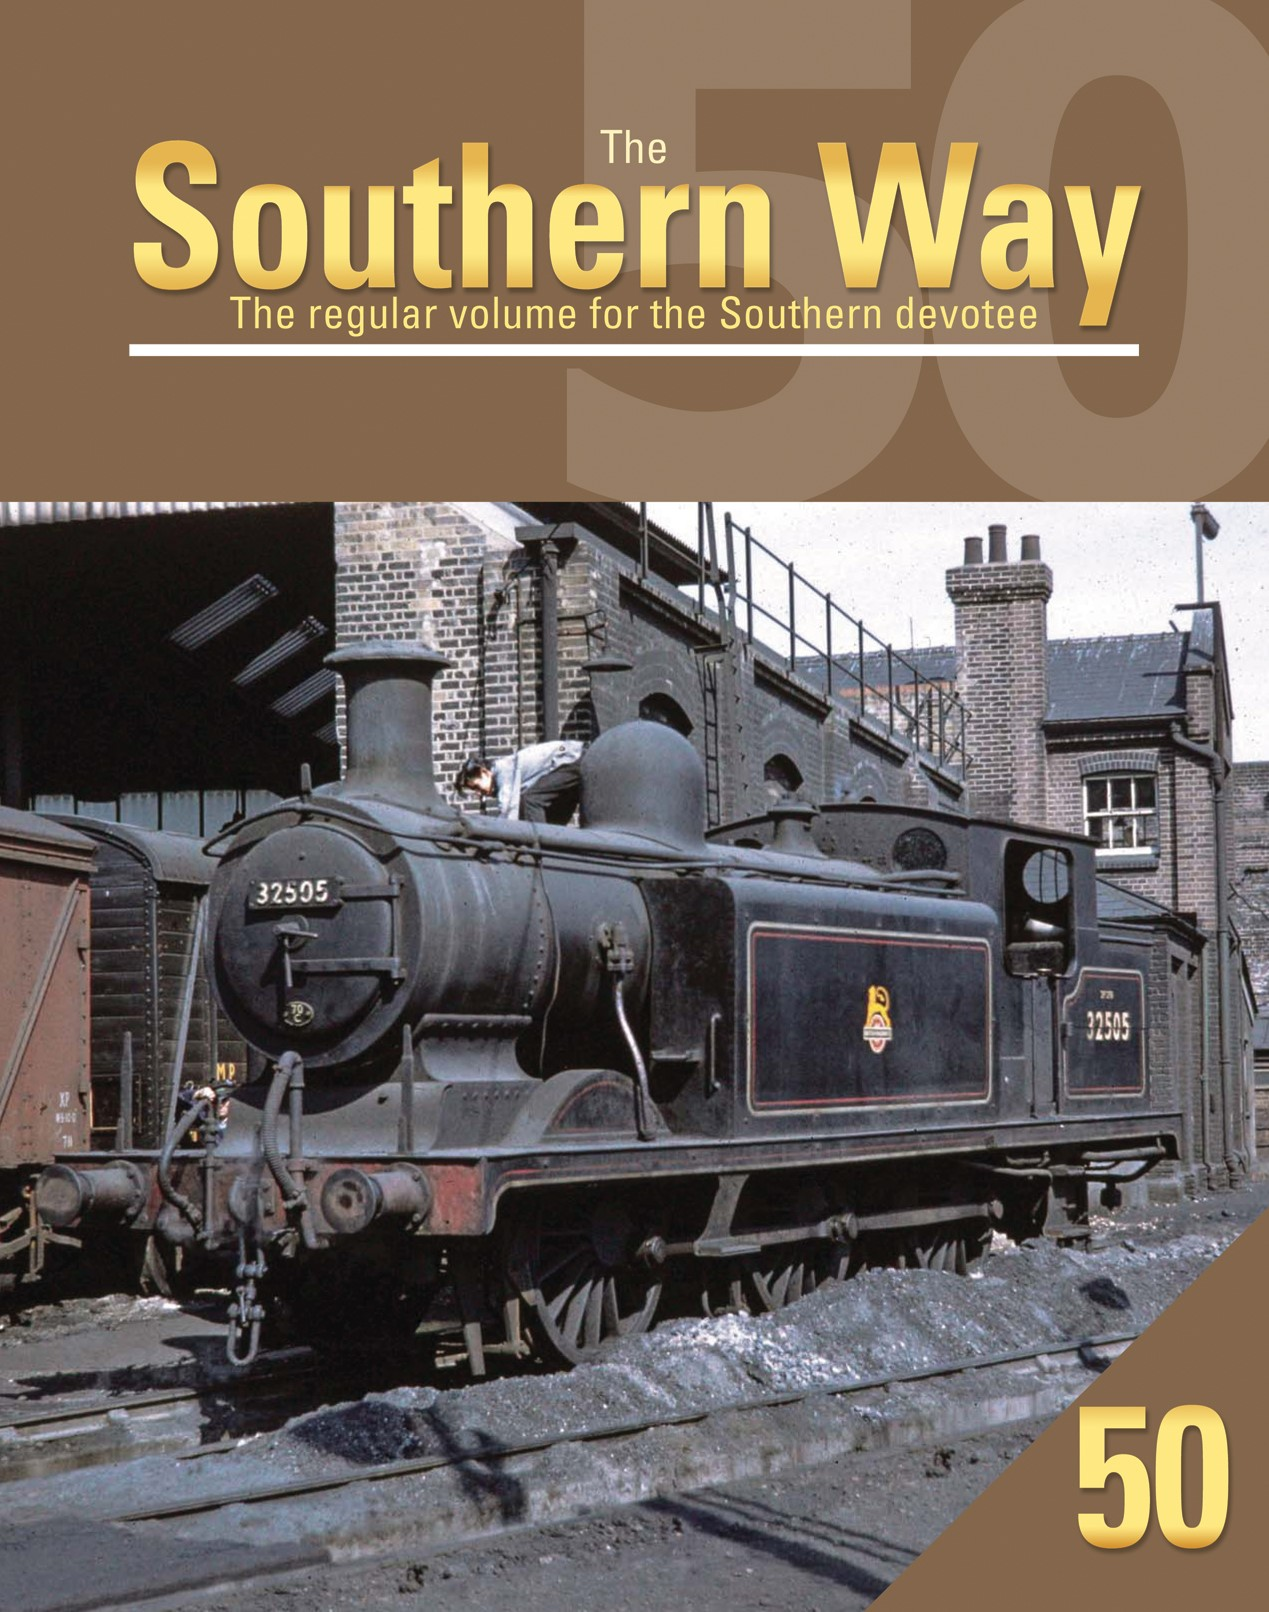 The Southern Way Issue No 50